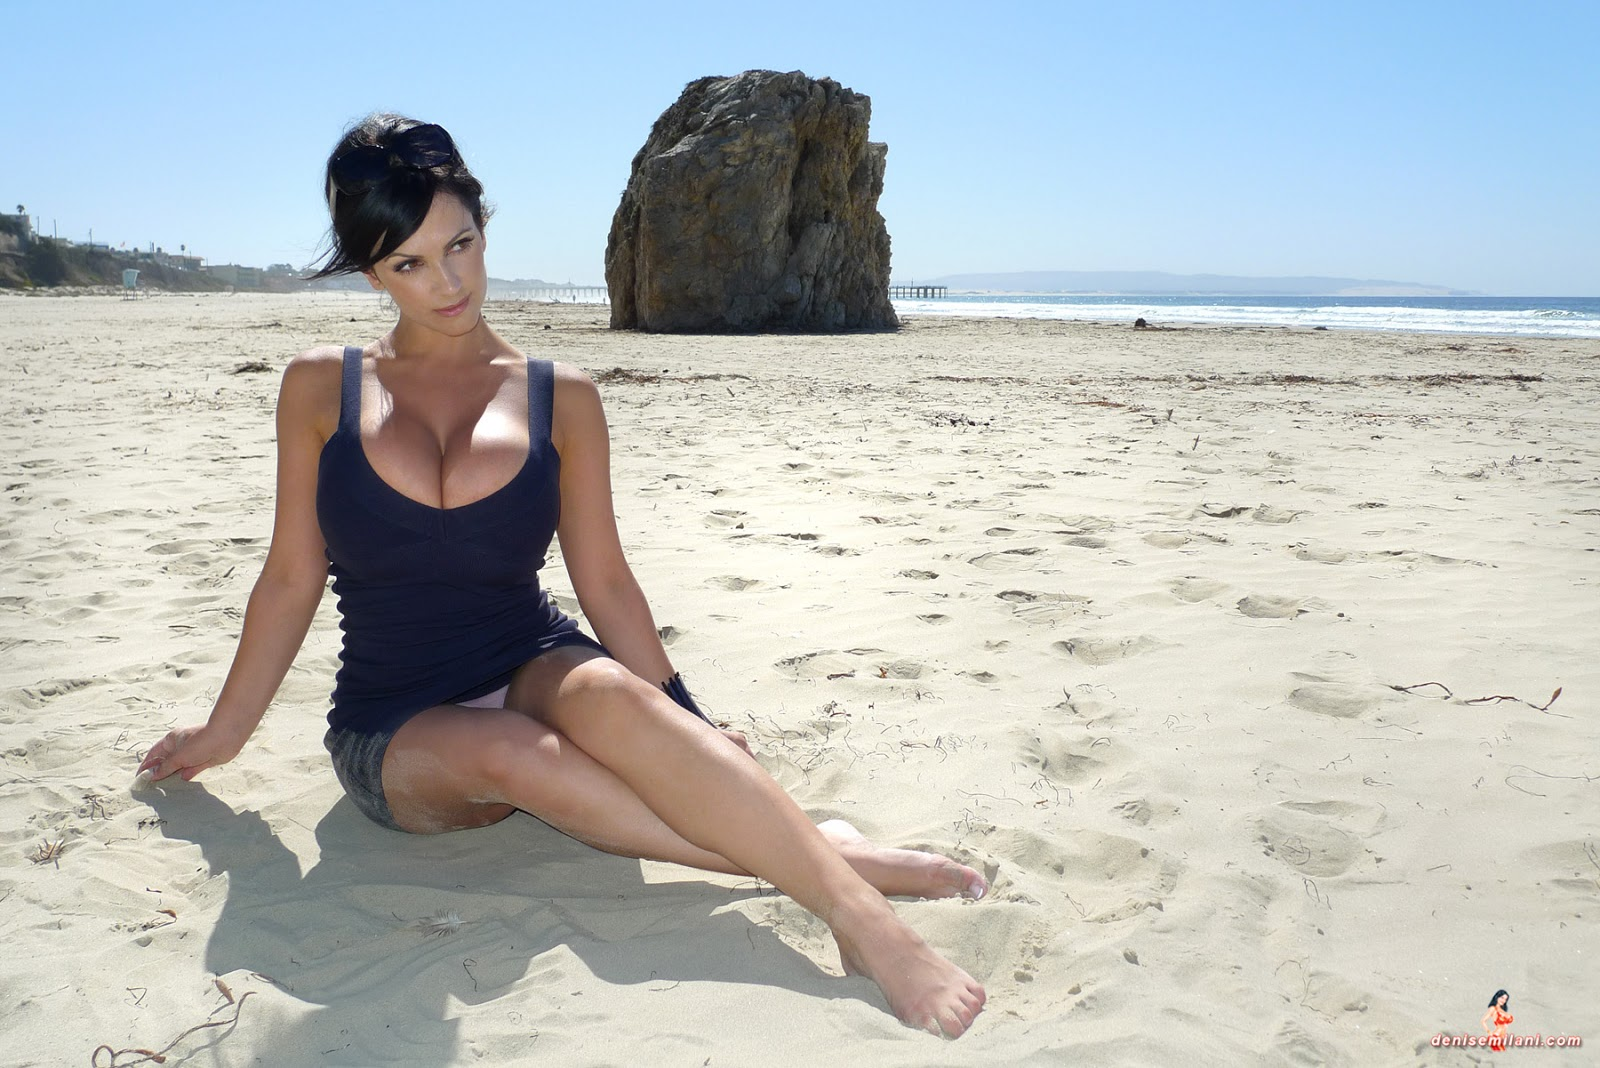 denise milani at the beach nude